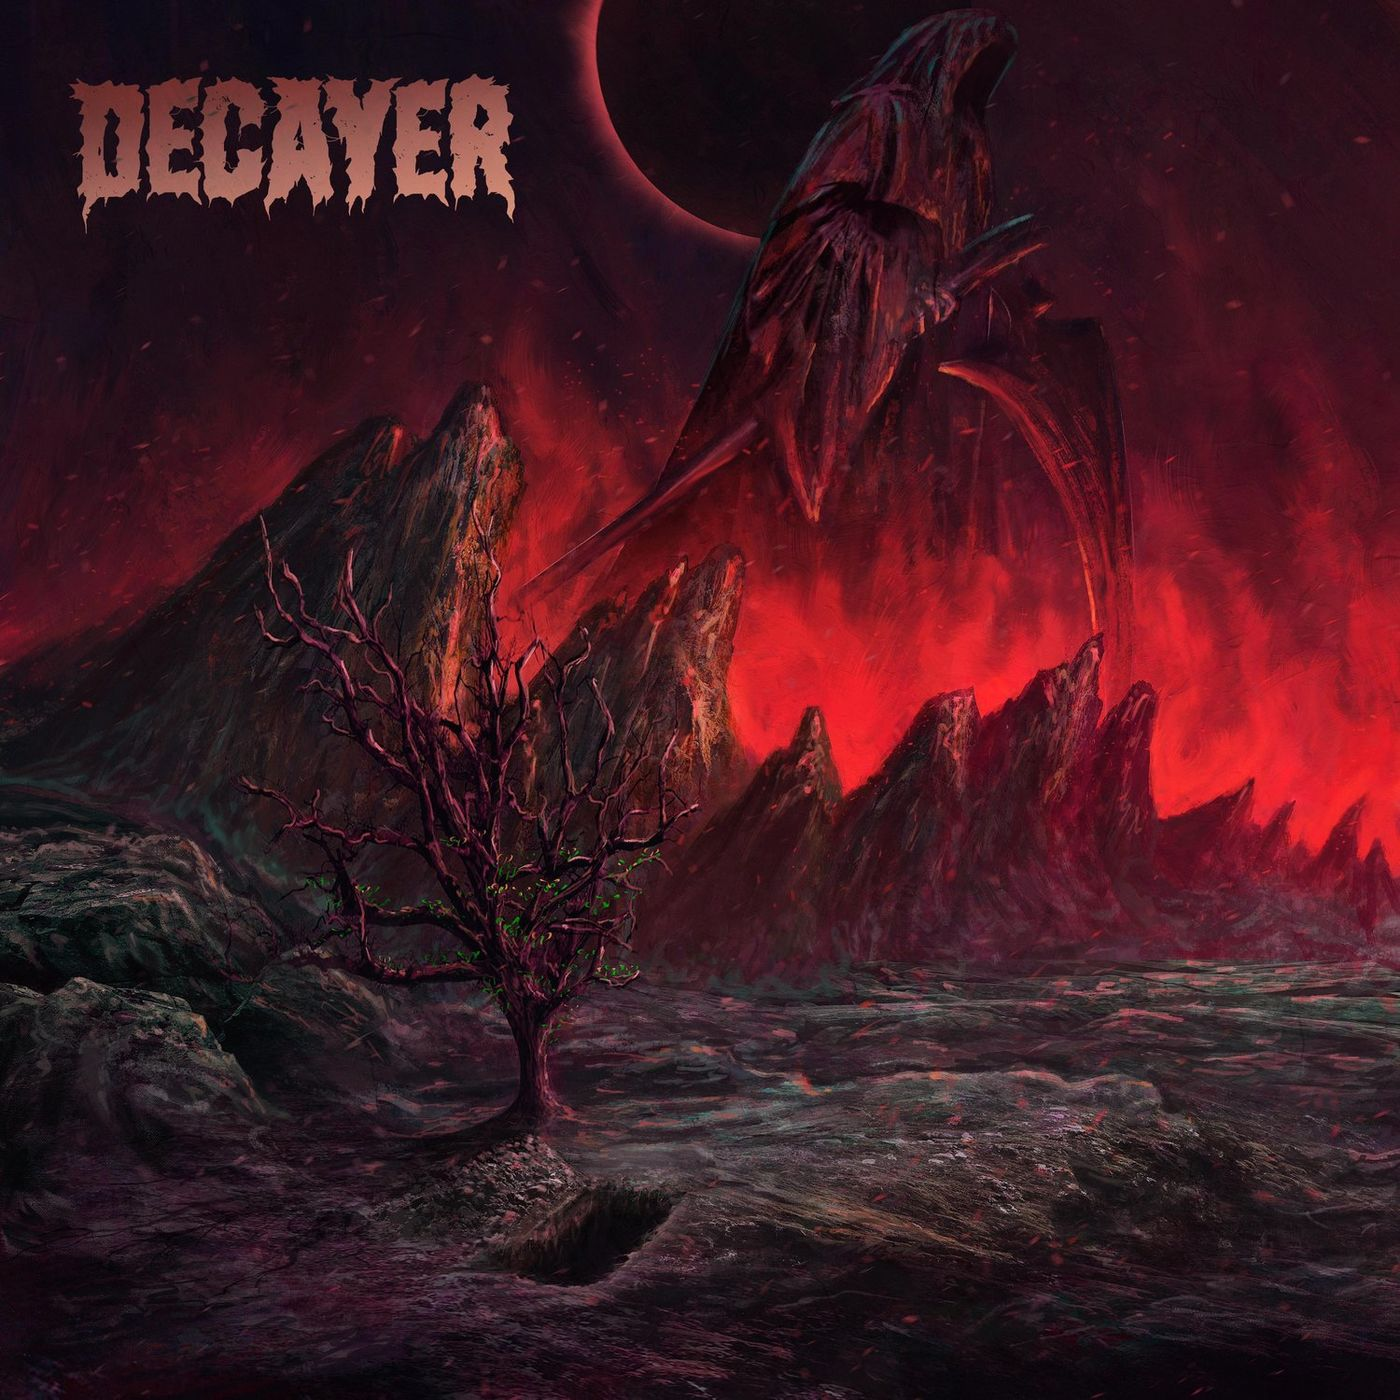 Decayer - Shades of Grief [EP] (2020)